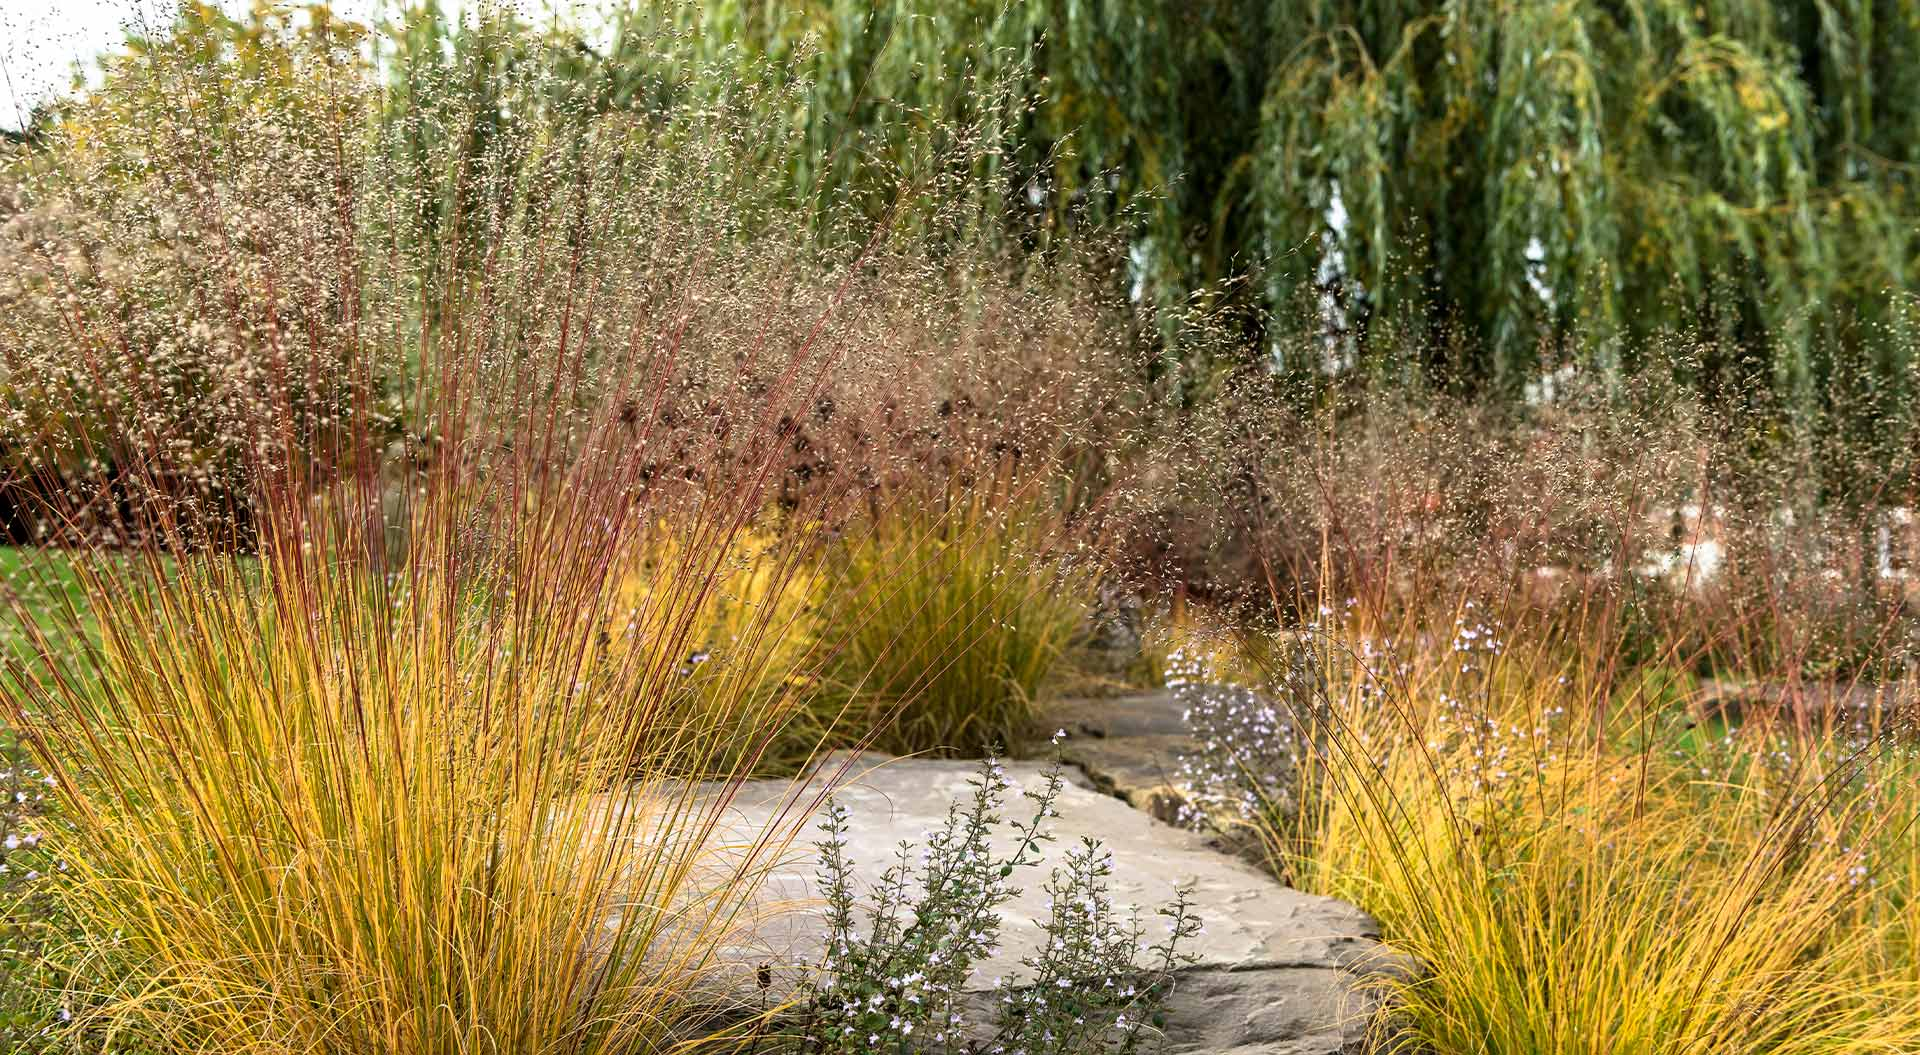 Detailed view on natural stones with plants